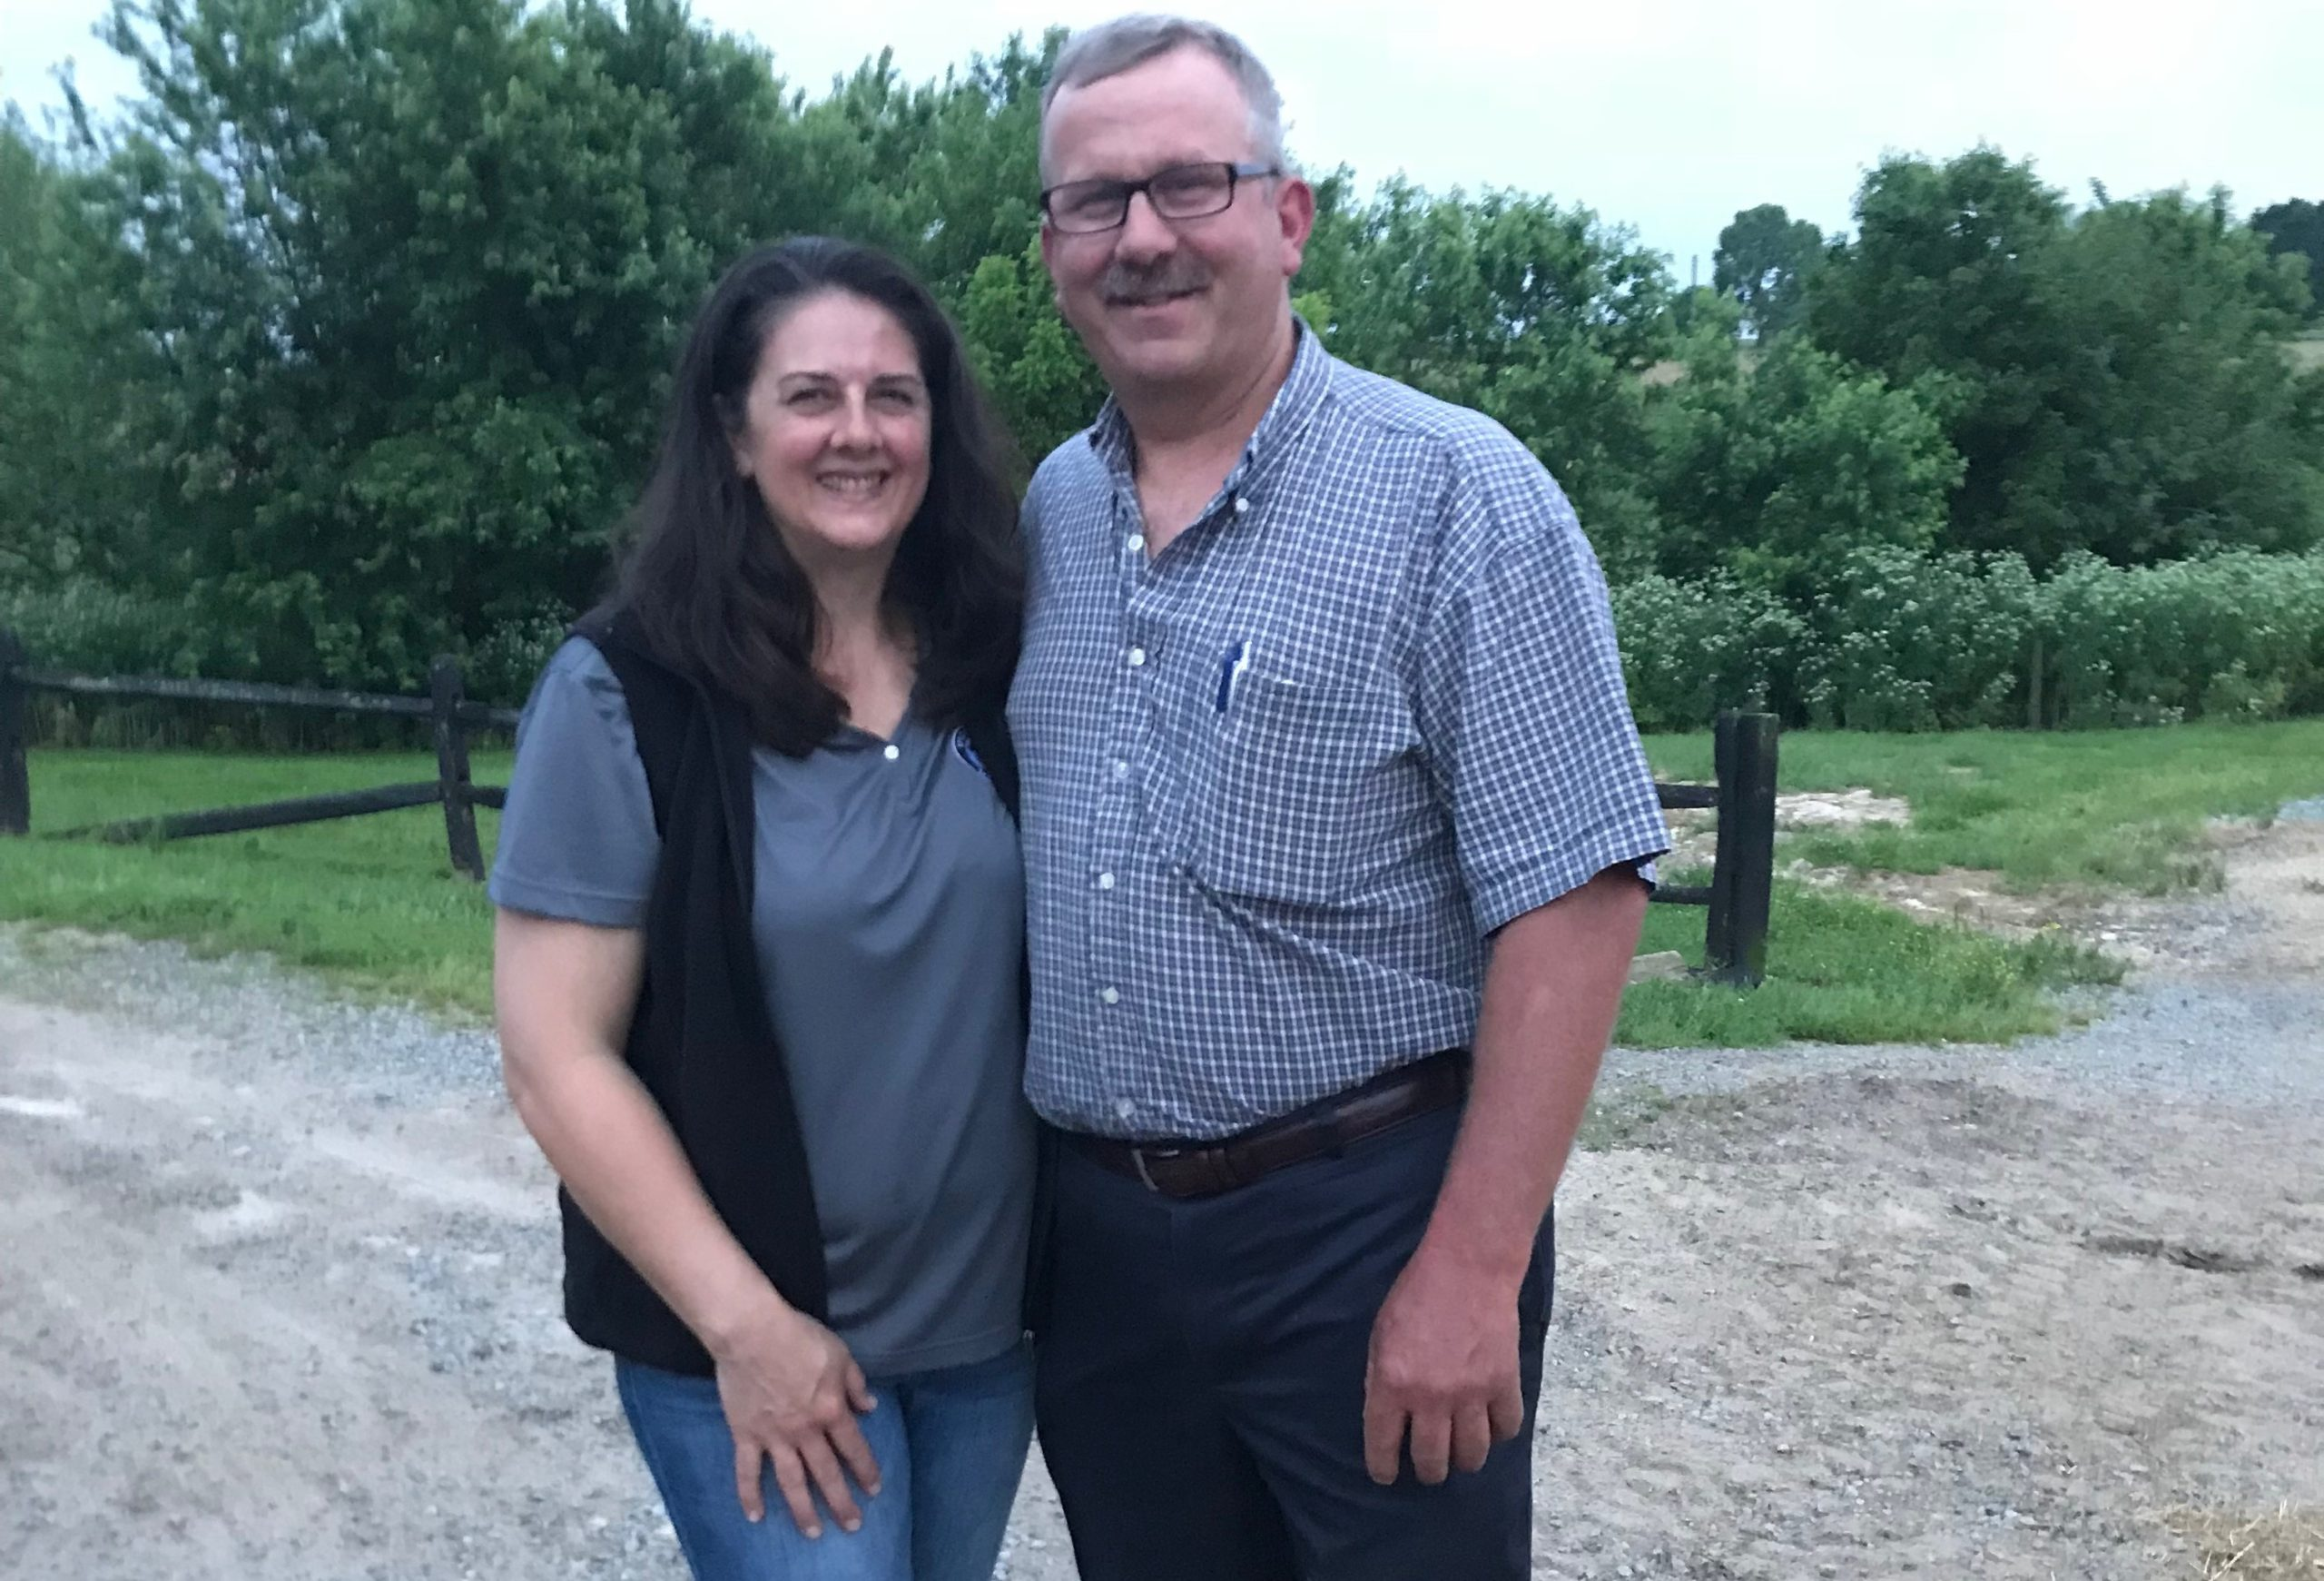 Check Out What Makes Cochranville's Duane and Marilyn Hershey the 2018 Farmers of the Year